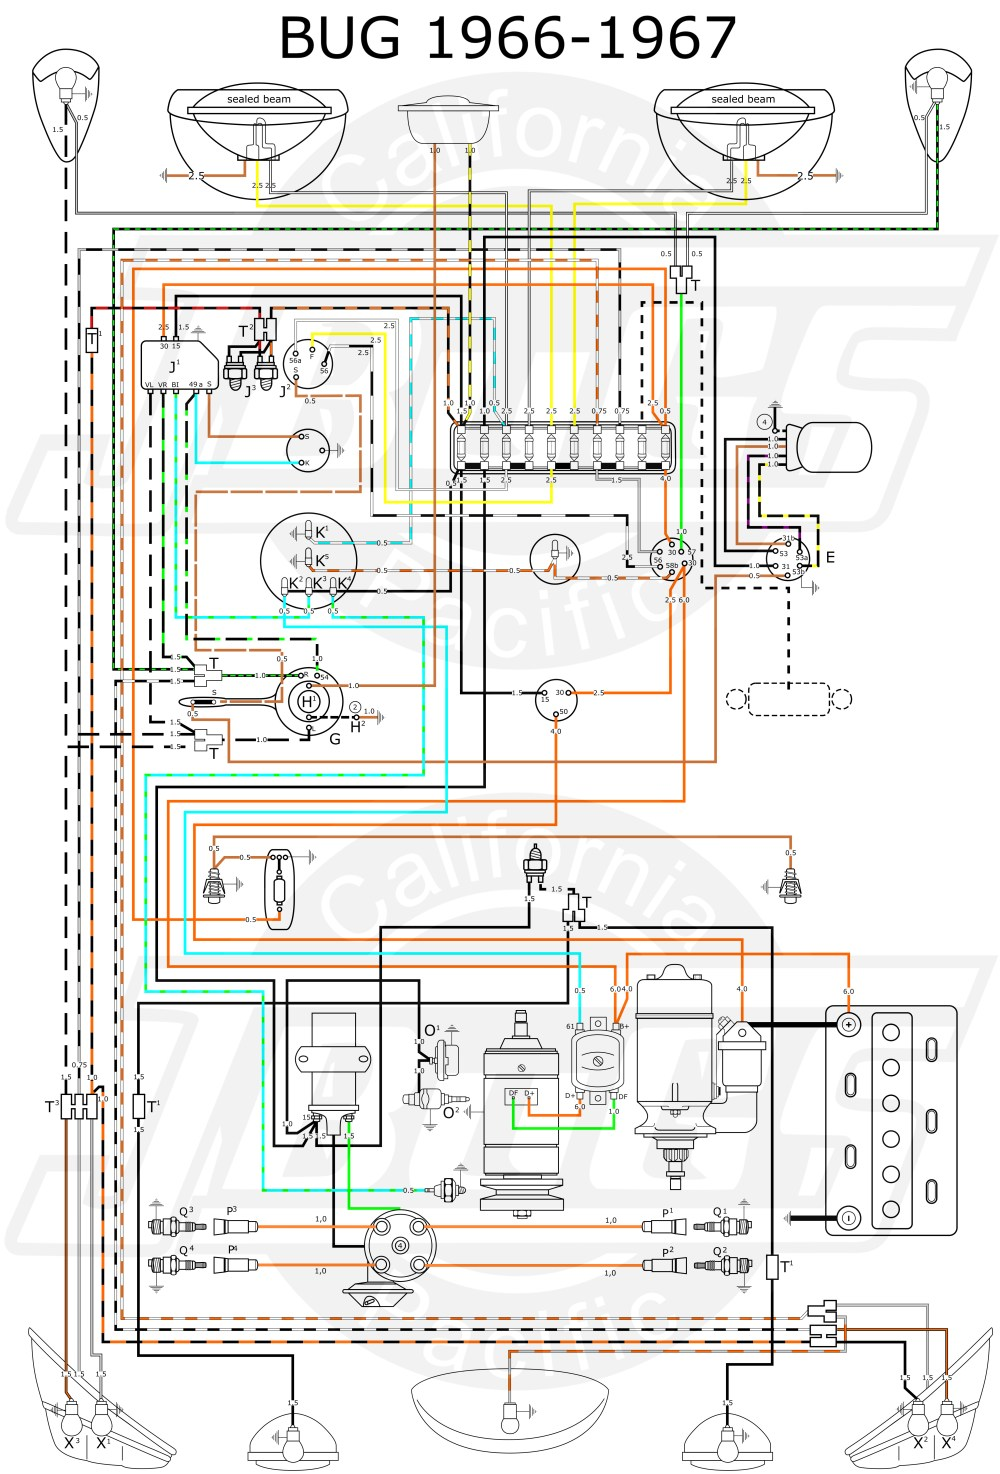 medium resolution of wiring a fiat 128 free ford 3000 gas wiring rco410 wiring diagram vw bug 1966 67